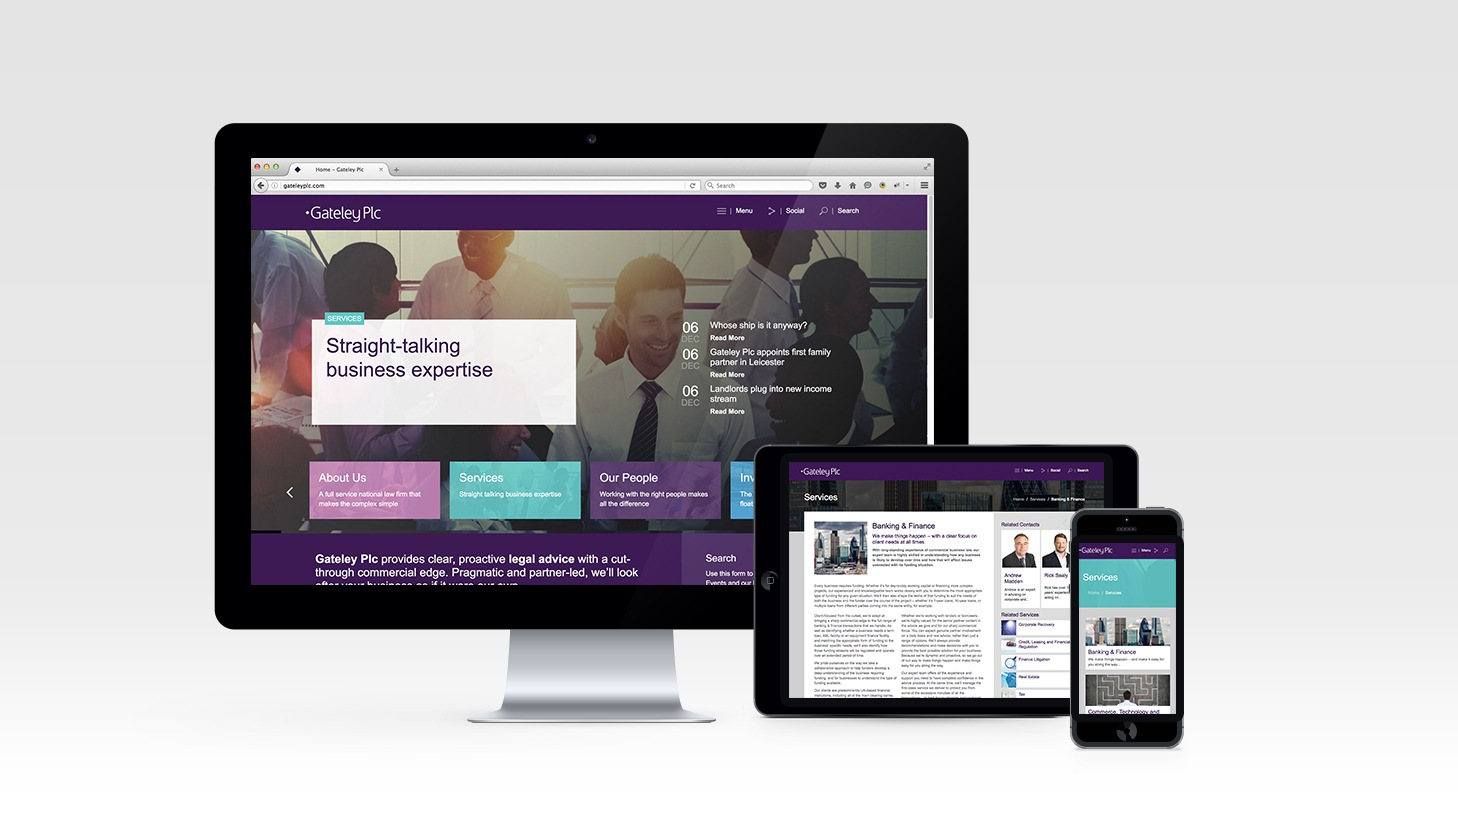 Gateley Plc - Responsive Wordpress Website Design & Development